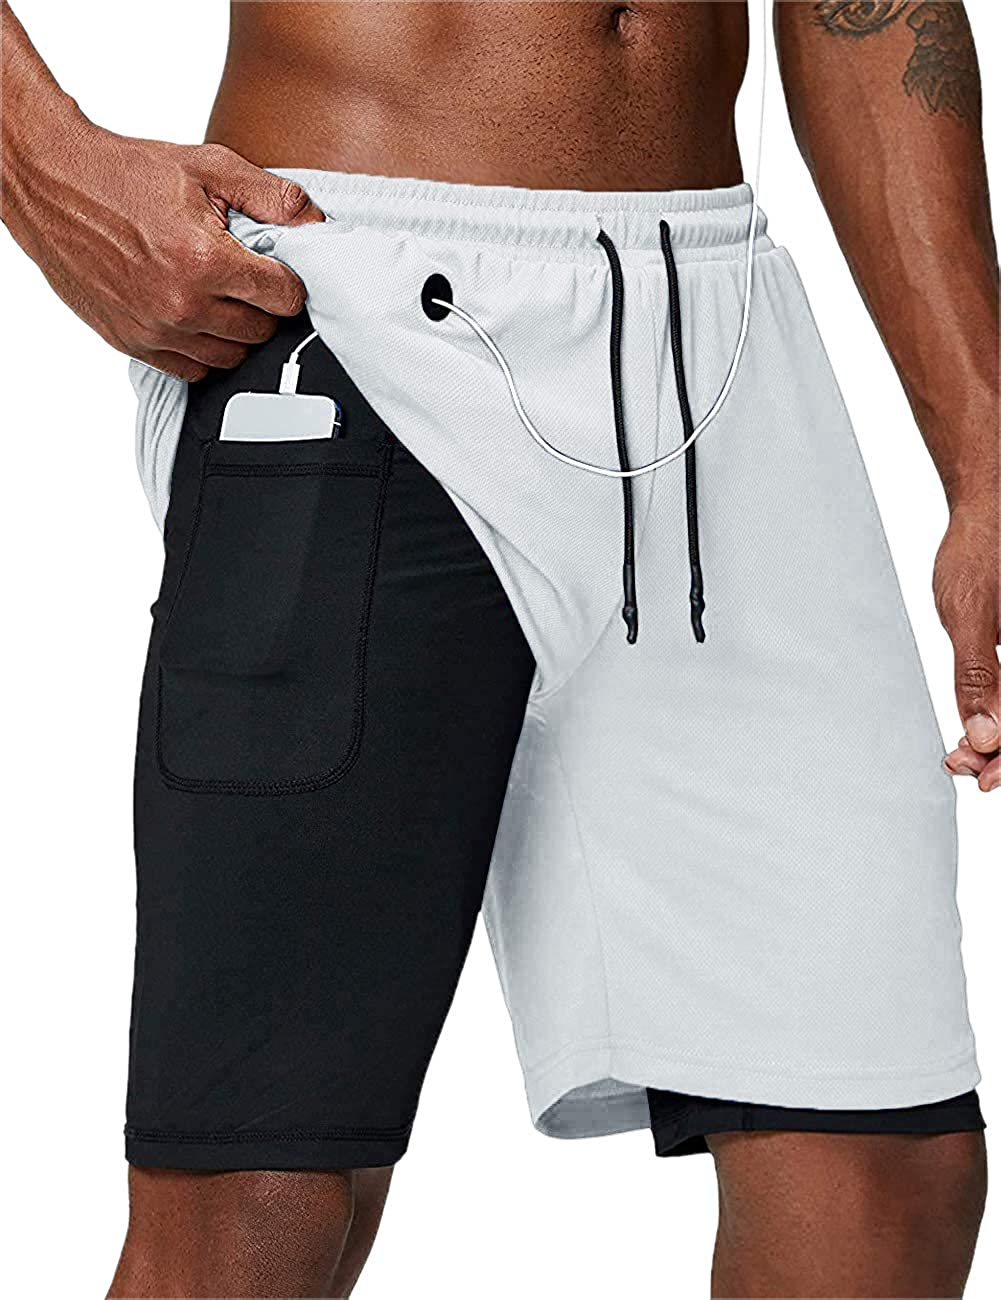 Hestenve Mens 2 in 1 Gym Running Shorts Workout Quick Dry Yoga Shorts with Pocket